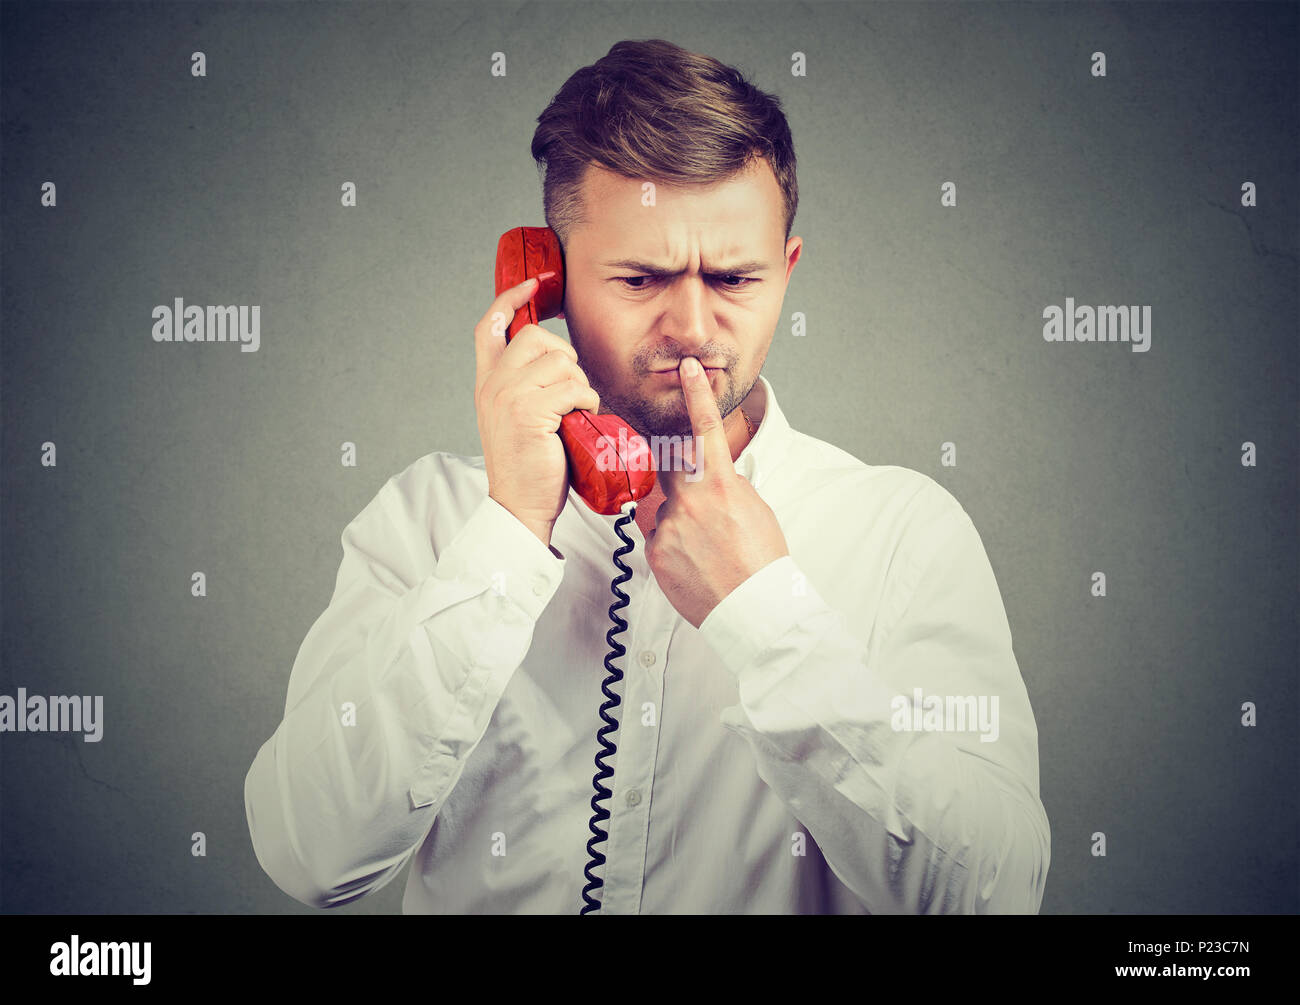 Pensive man in white shirt speaking on phone and touching lips in doubts having confusing news. - Stock Image